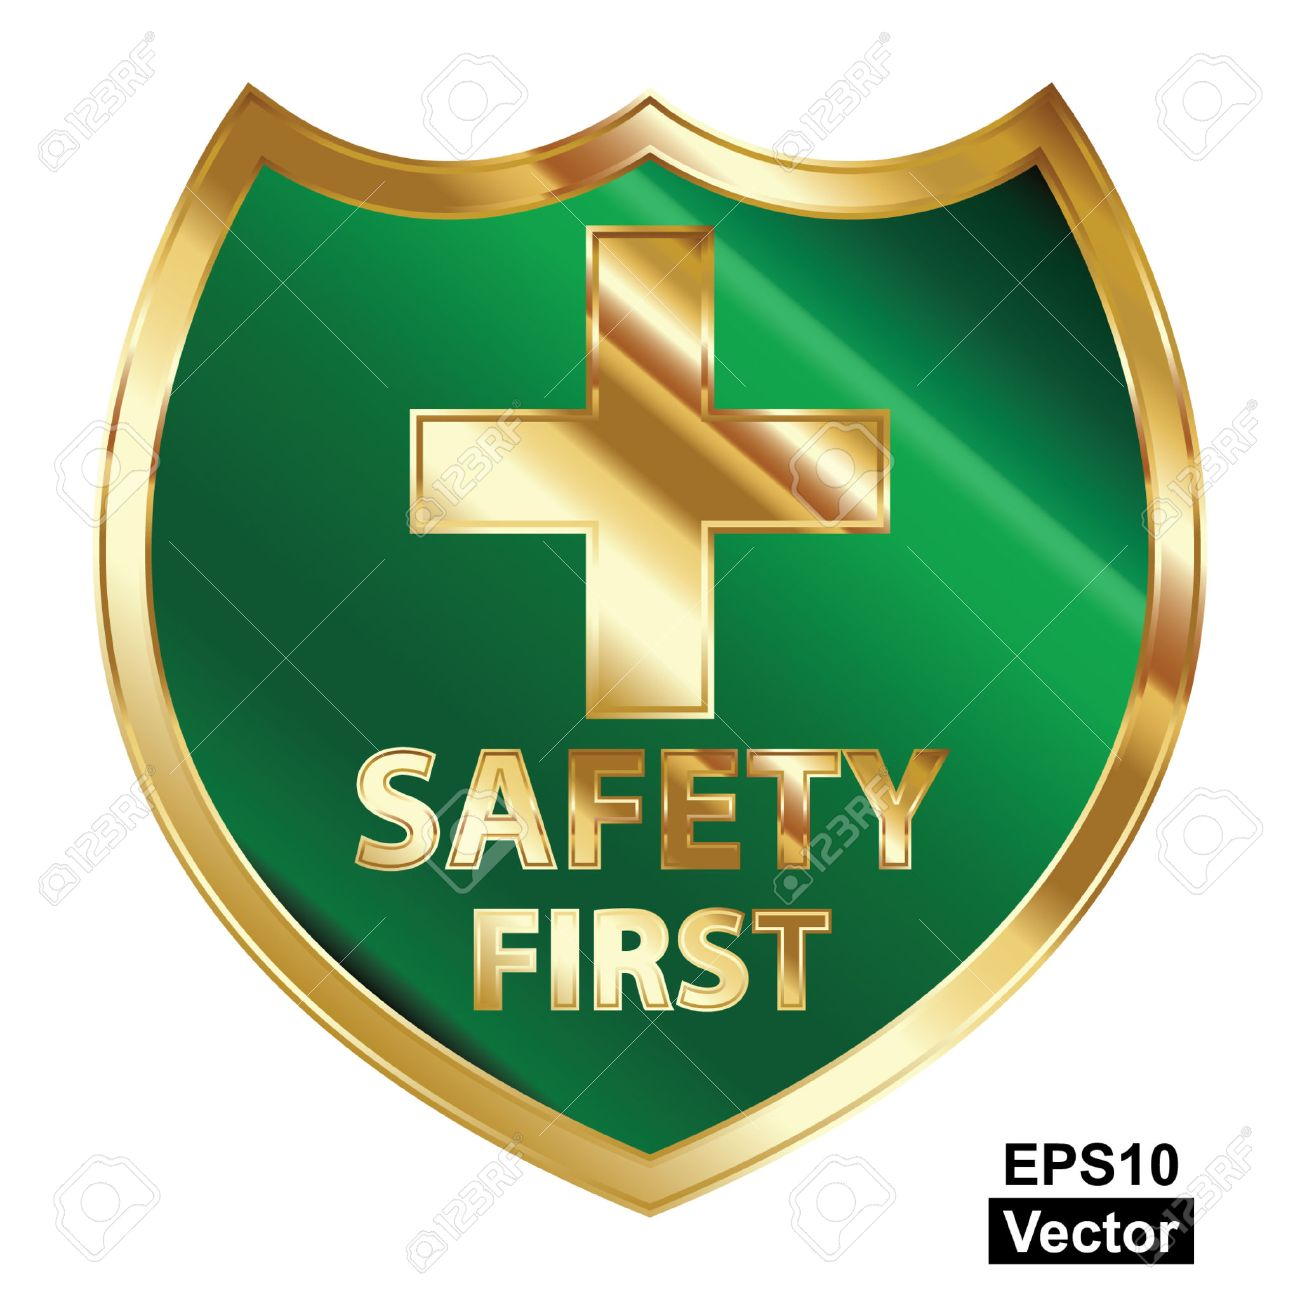 Vector, Safety First Concept, Green and Golden Metallic Style Shield With Golden Cross Sign and Safety First Text Isolated on White Background Stock Vector - 24016511